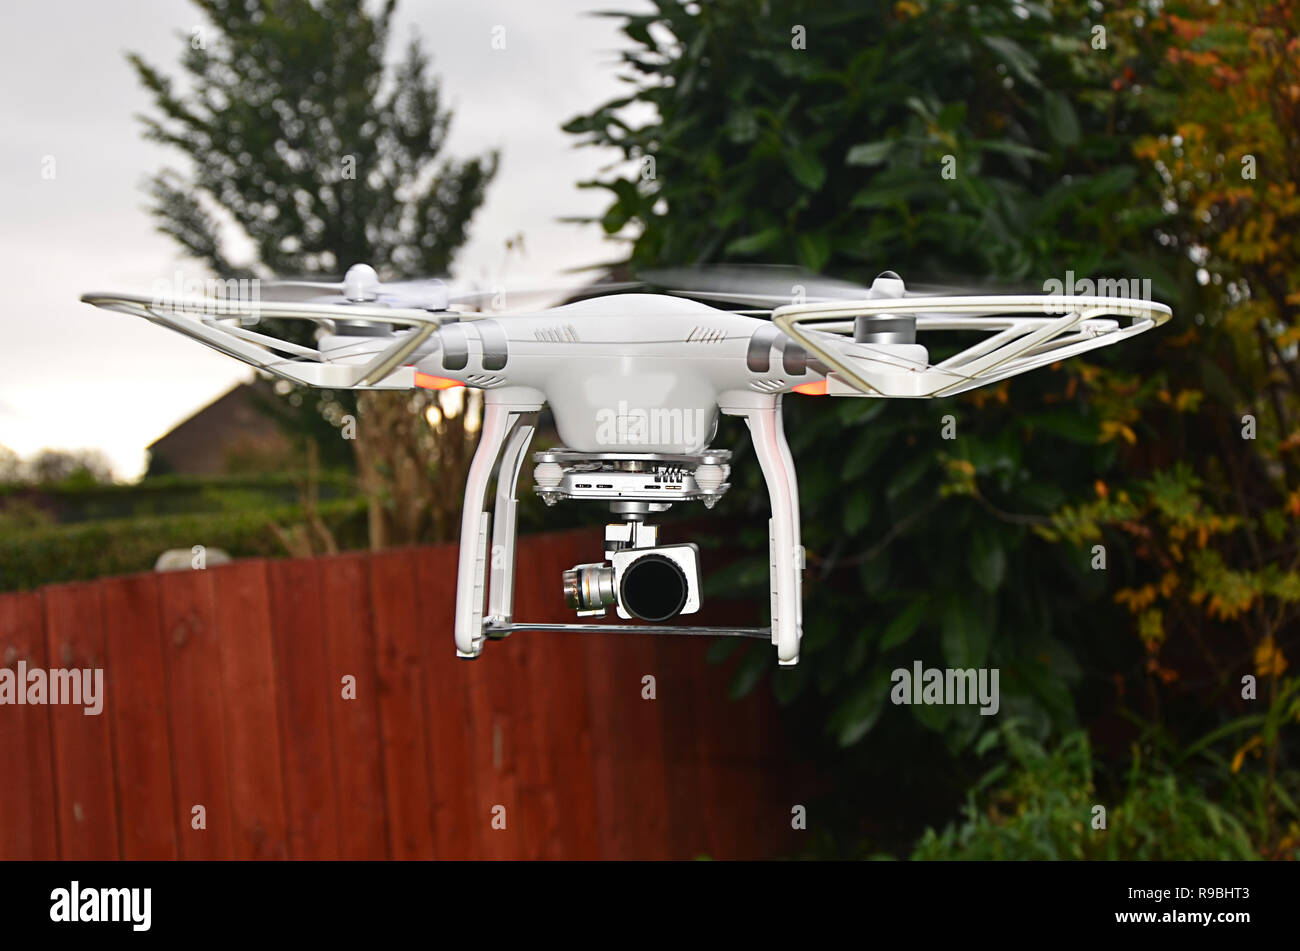 unmanned aircraft, drone, quad copter camera drone - Stock Image